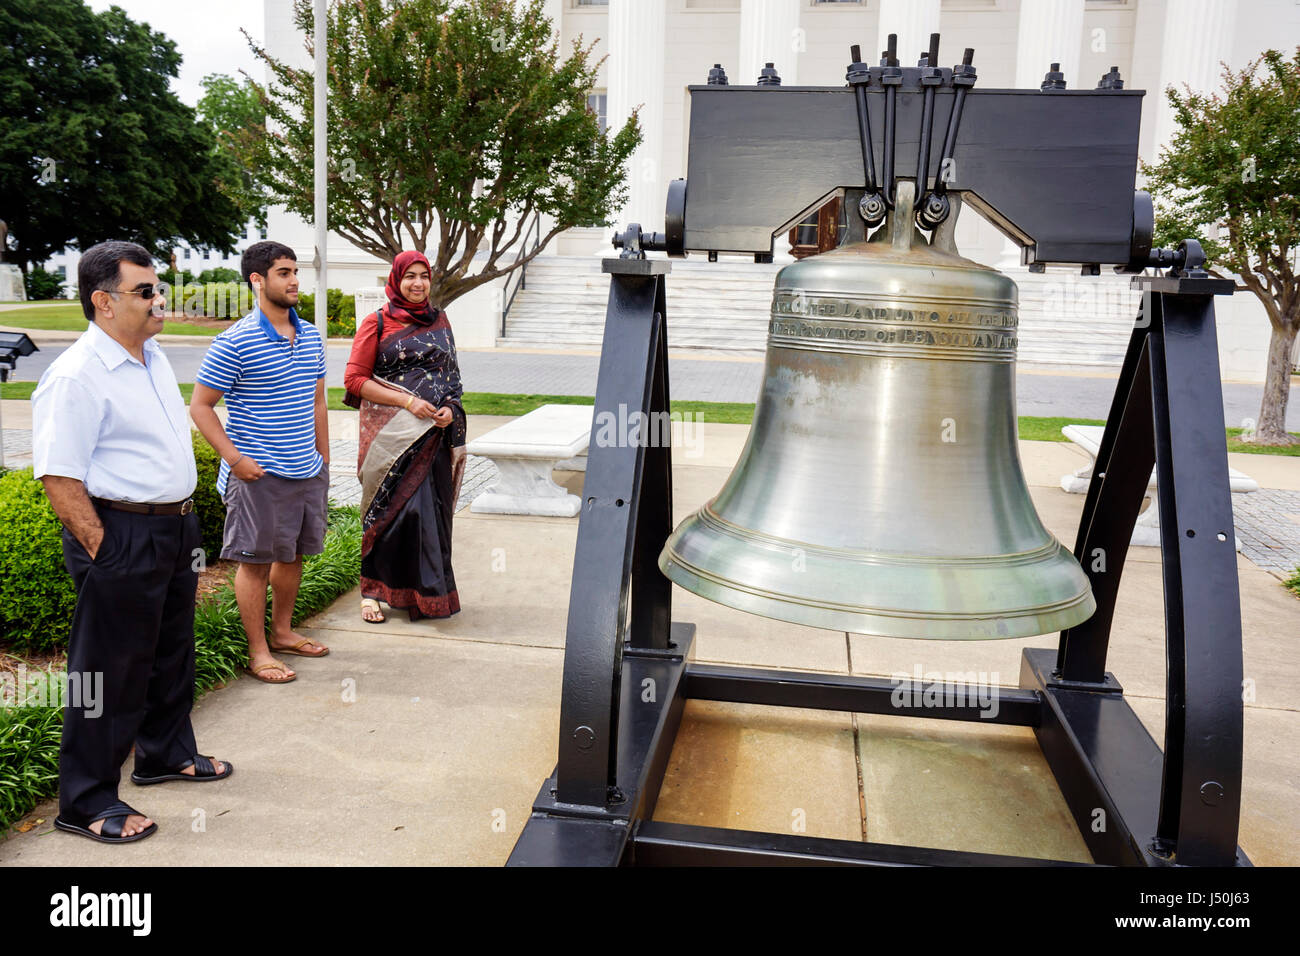 Montgomery Alabama State Capitol Building Liberty Bell replica Asian family Muslim man woman teen parents son government - Stock Image